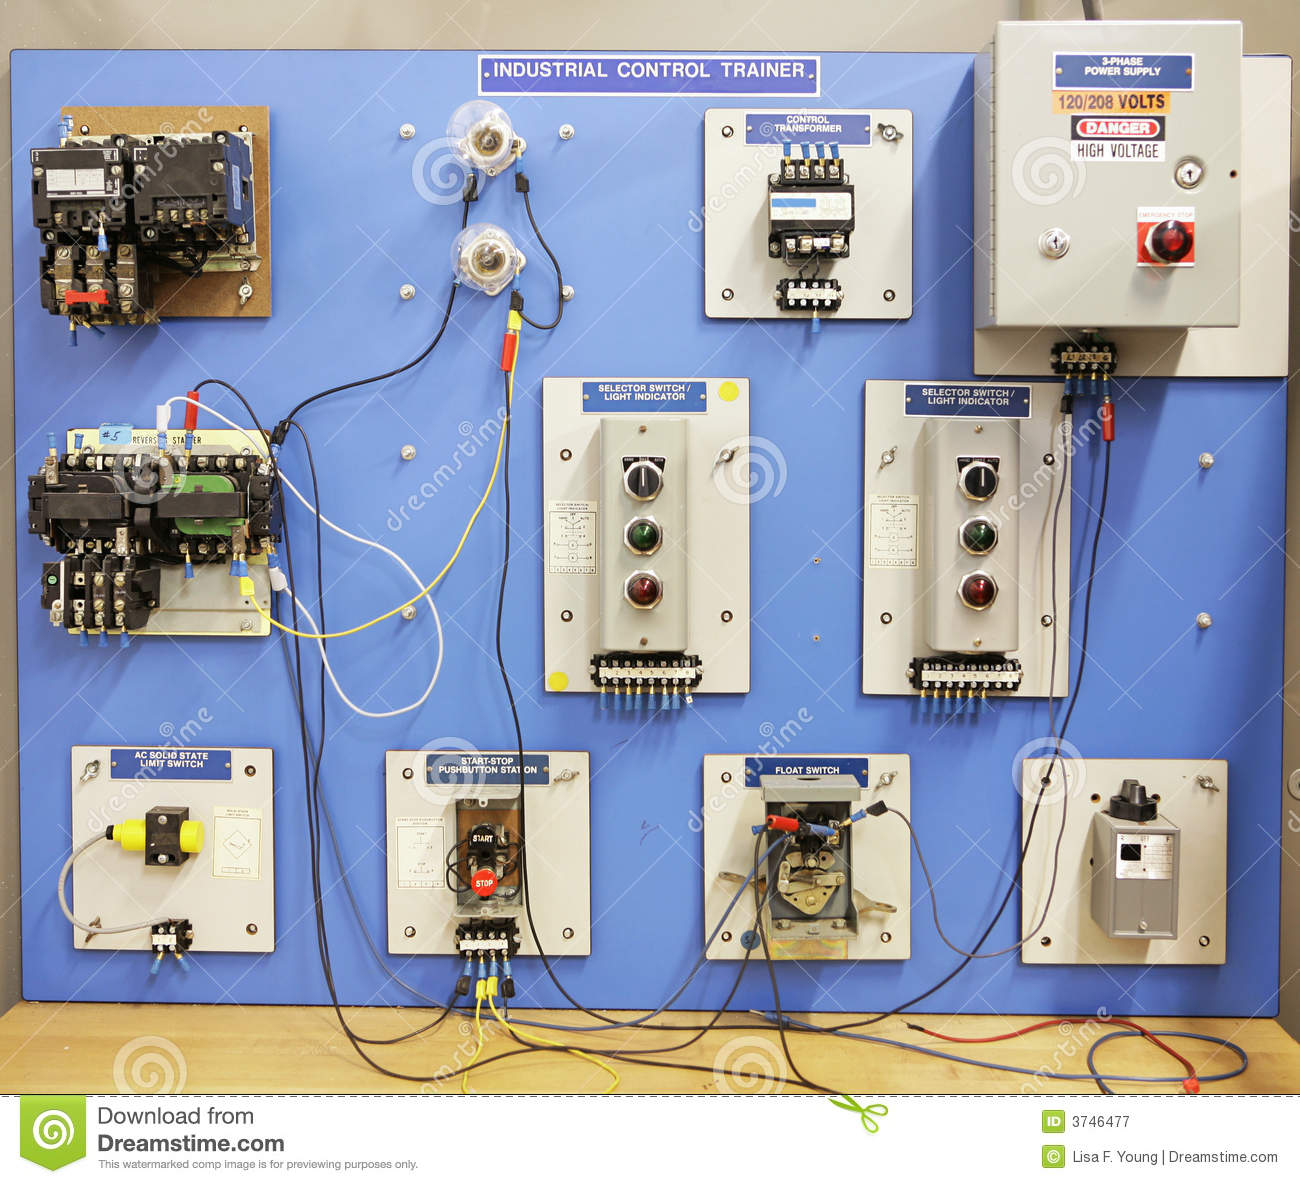 Adult Ed Industrial Control Trainer Royalty Free Stock Photography Image 3746477